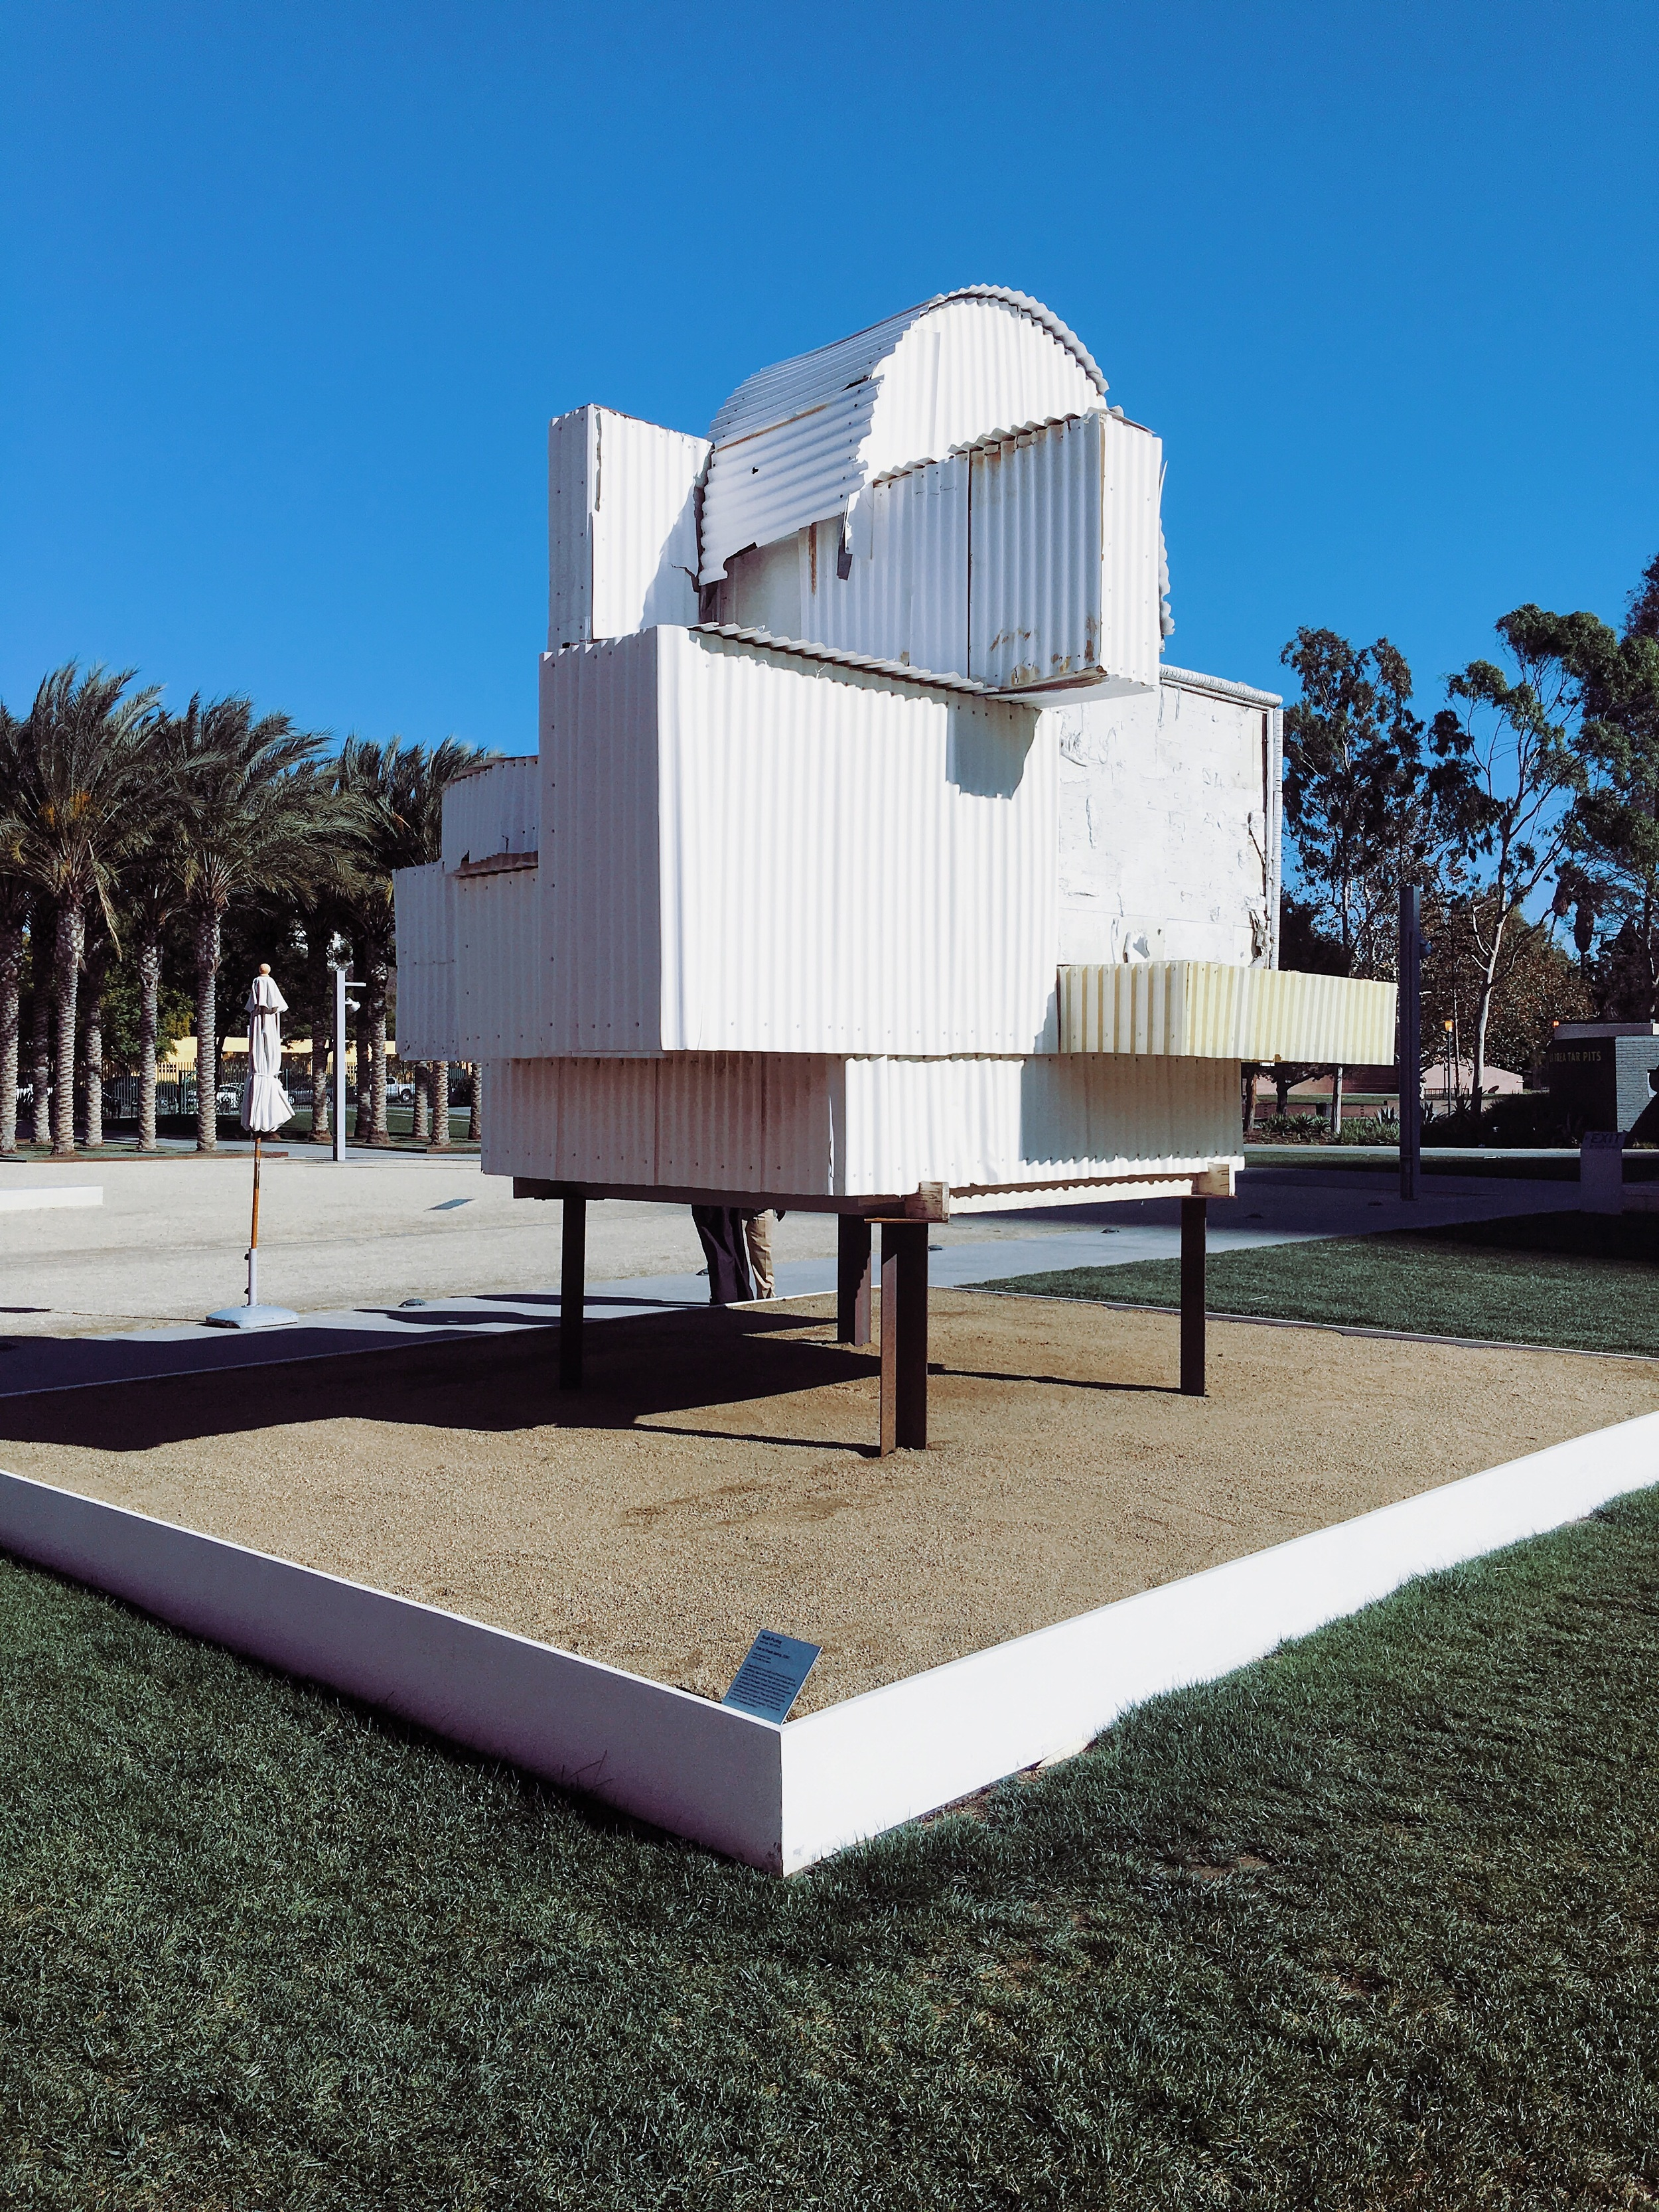 Noah Purifoy's ode to Ghery at LACMA